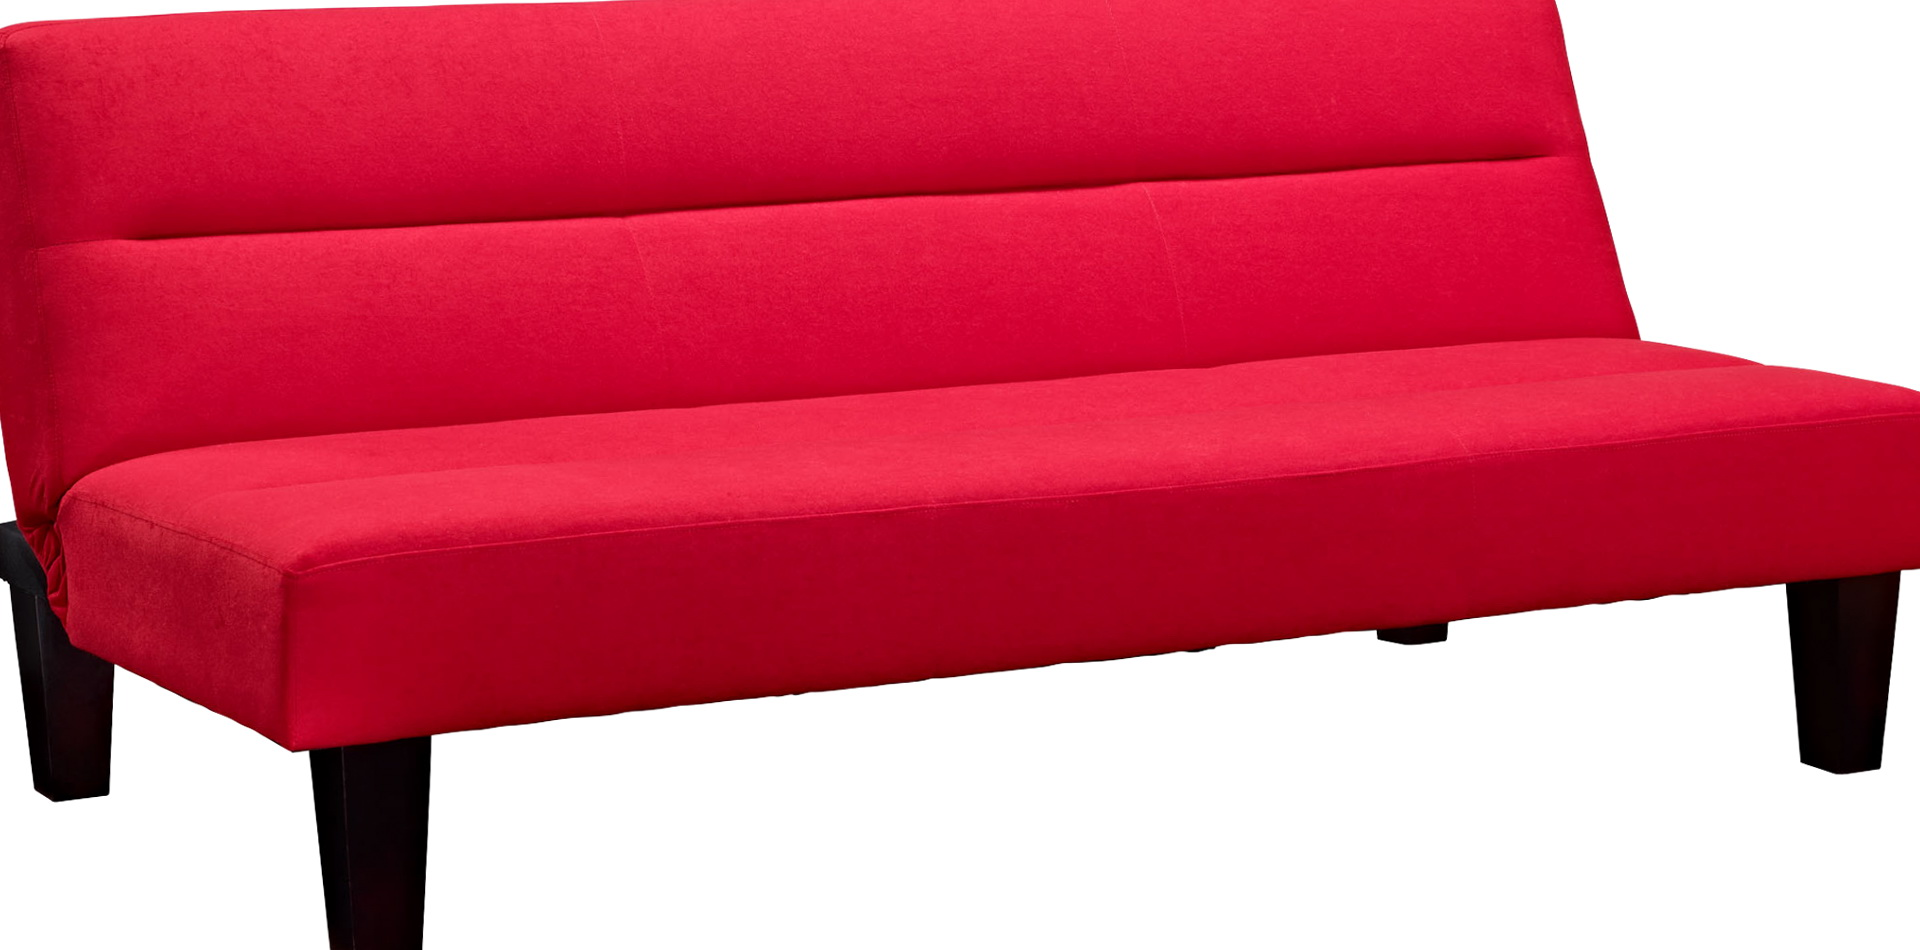 Kebo Futon Sofa Bed Red